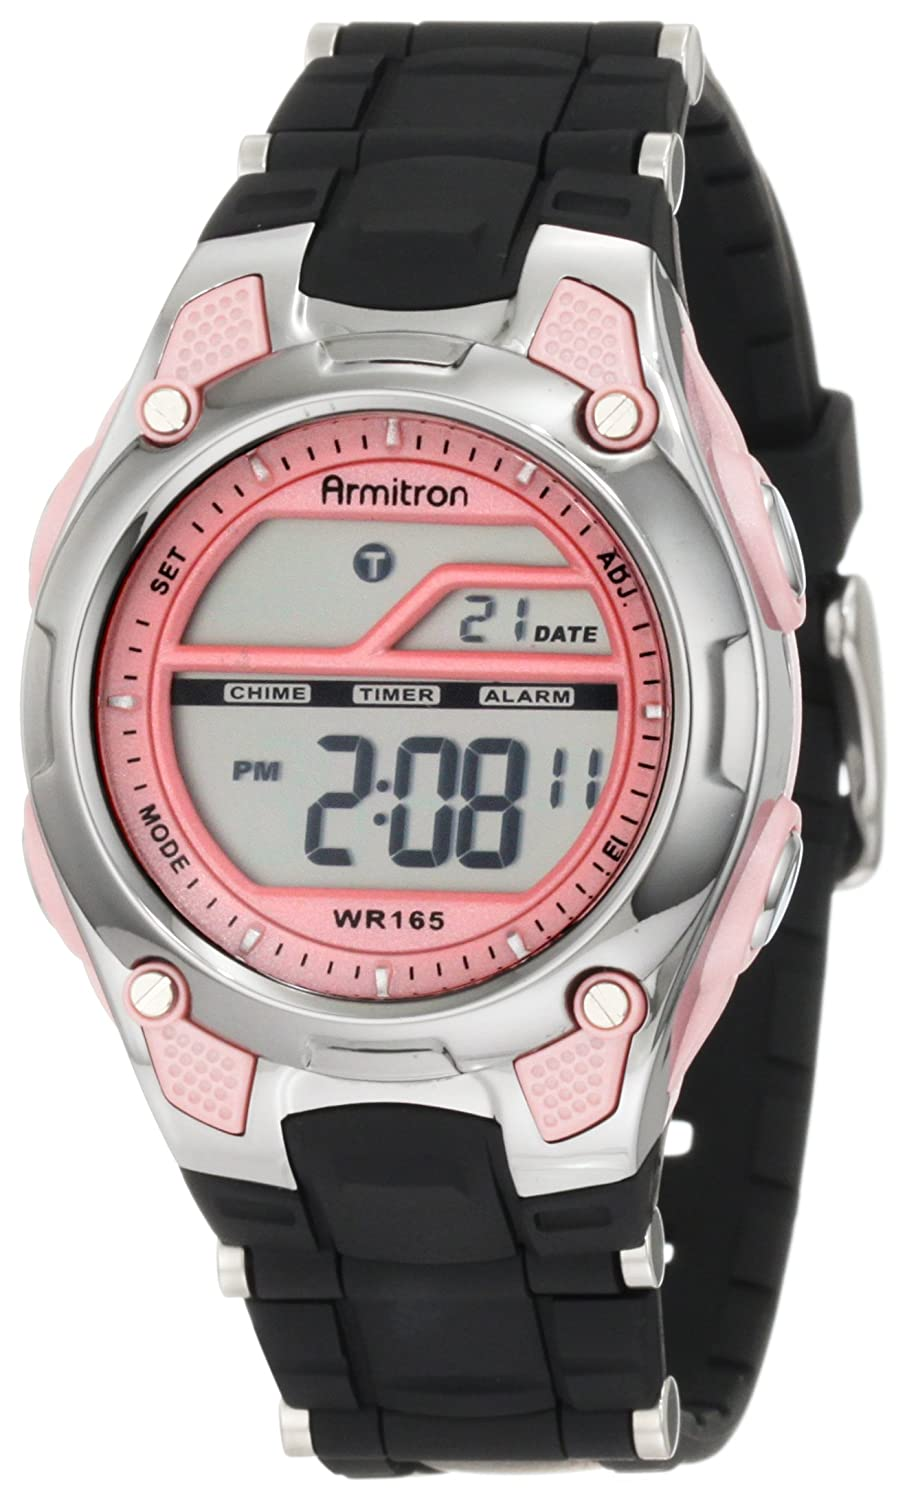 sports price red pakistan kids in watches watch digital item prices